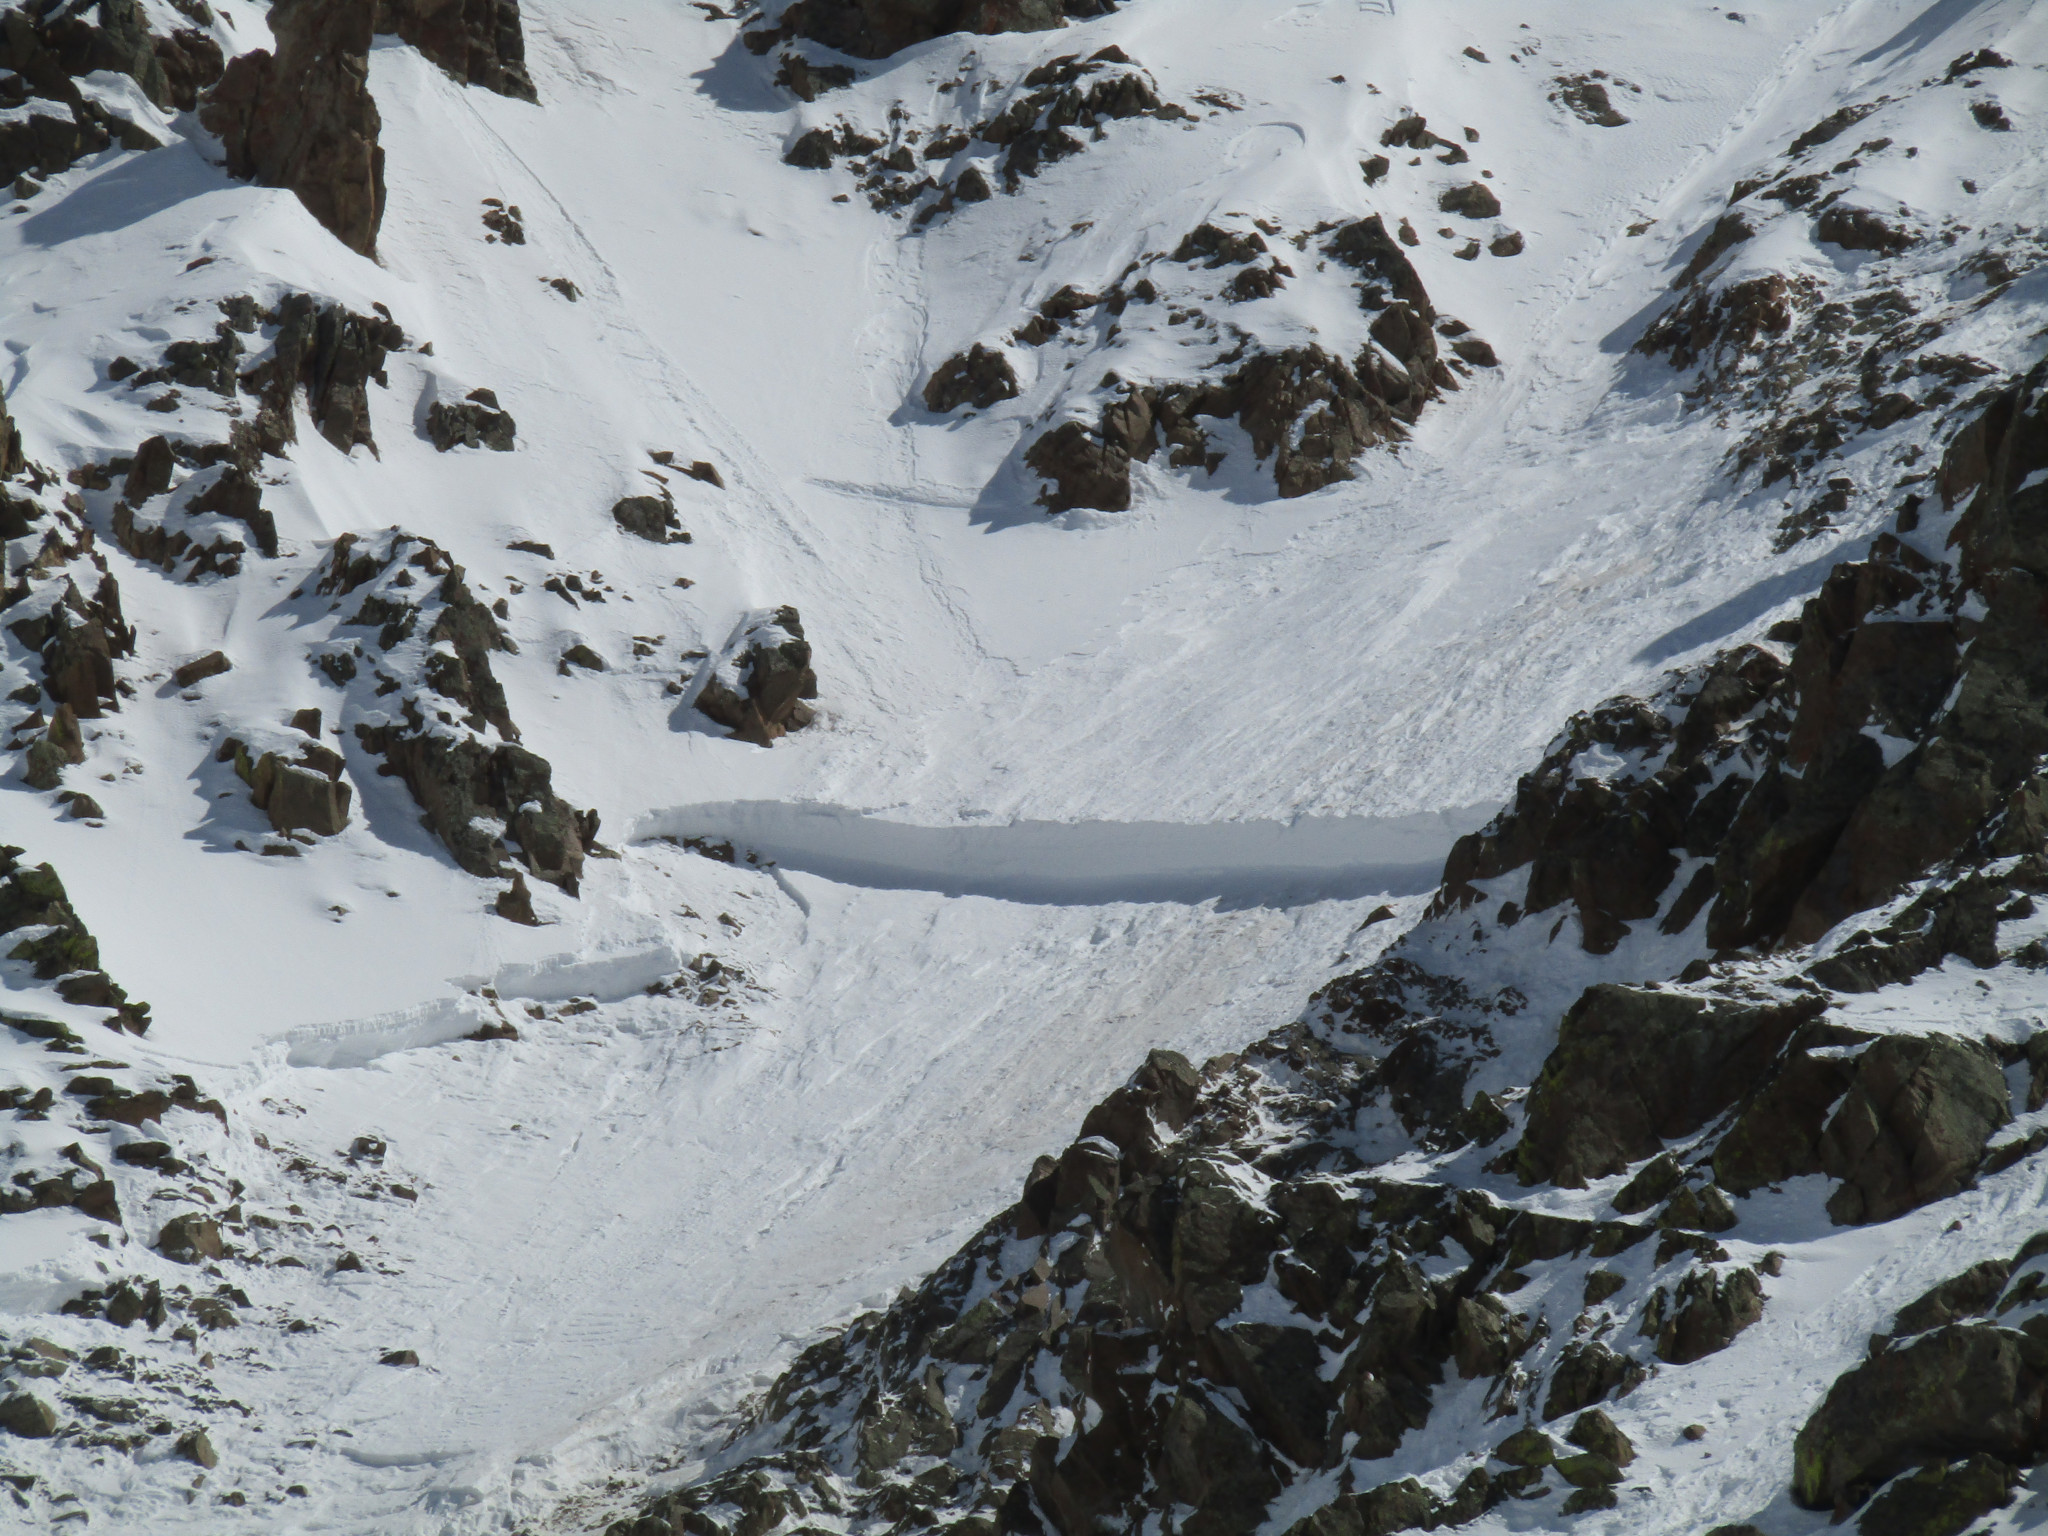 Colorado's first-ever criminal charges following an avalanche incident